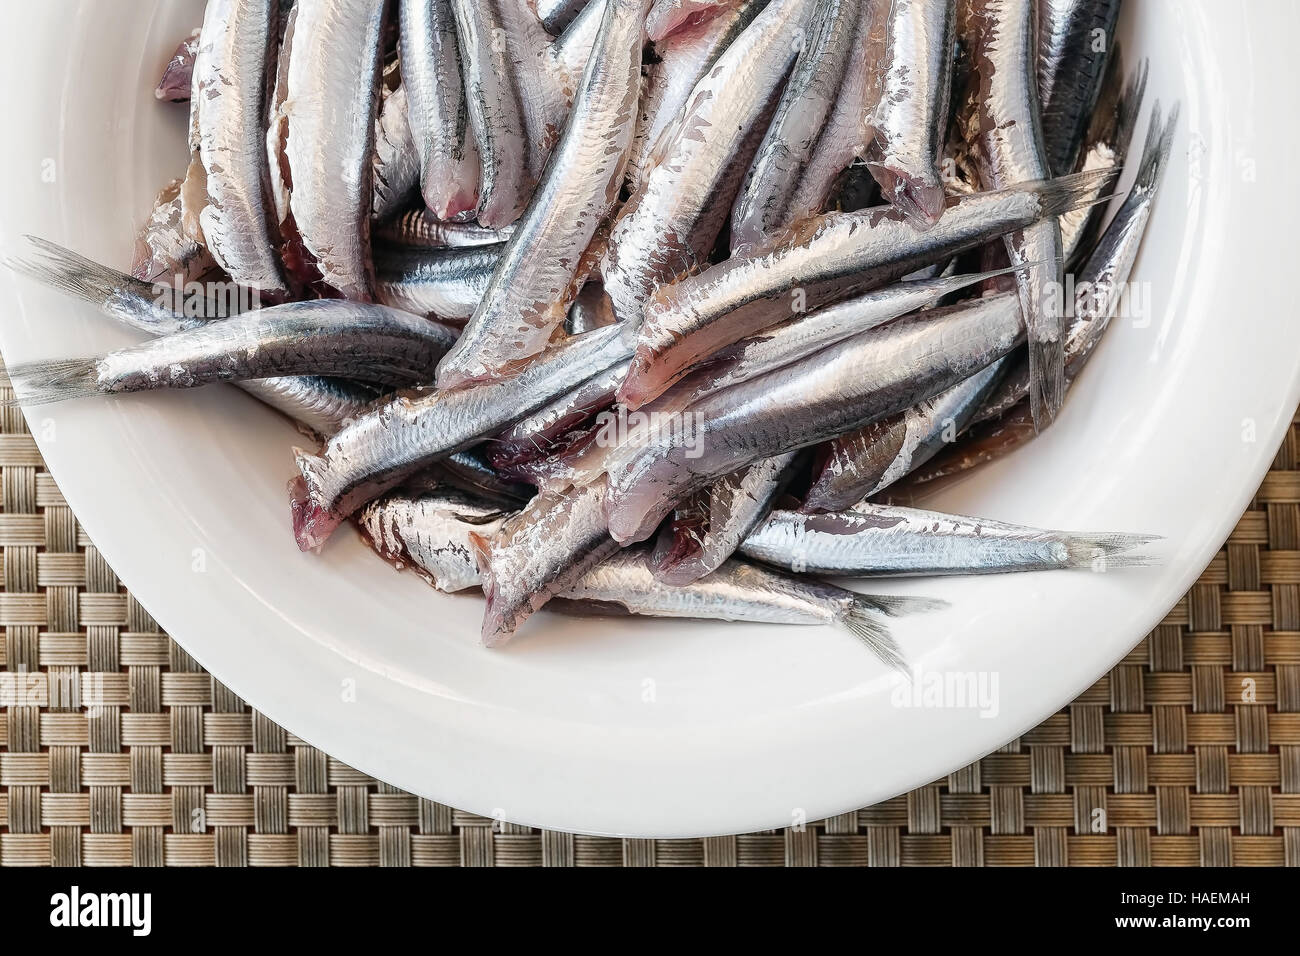 Anchovies headless, clean and ready to be cooked. white plate - Stock Image